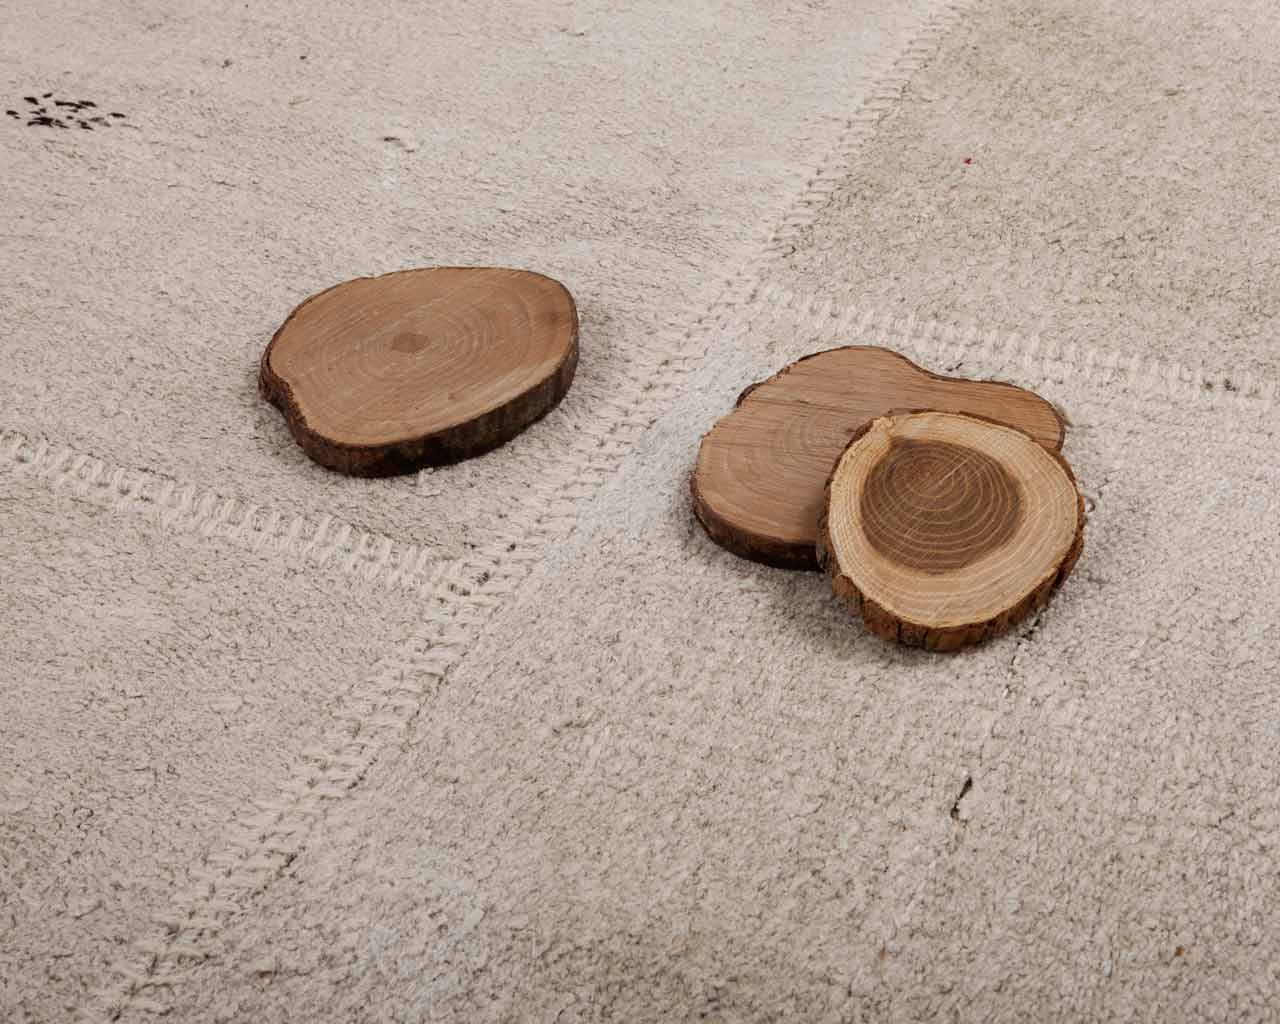 bio chemicalfree hemp sukhirug wood coasters